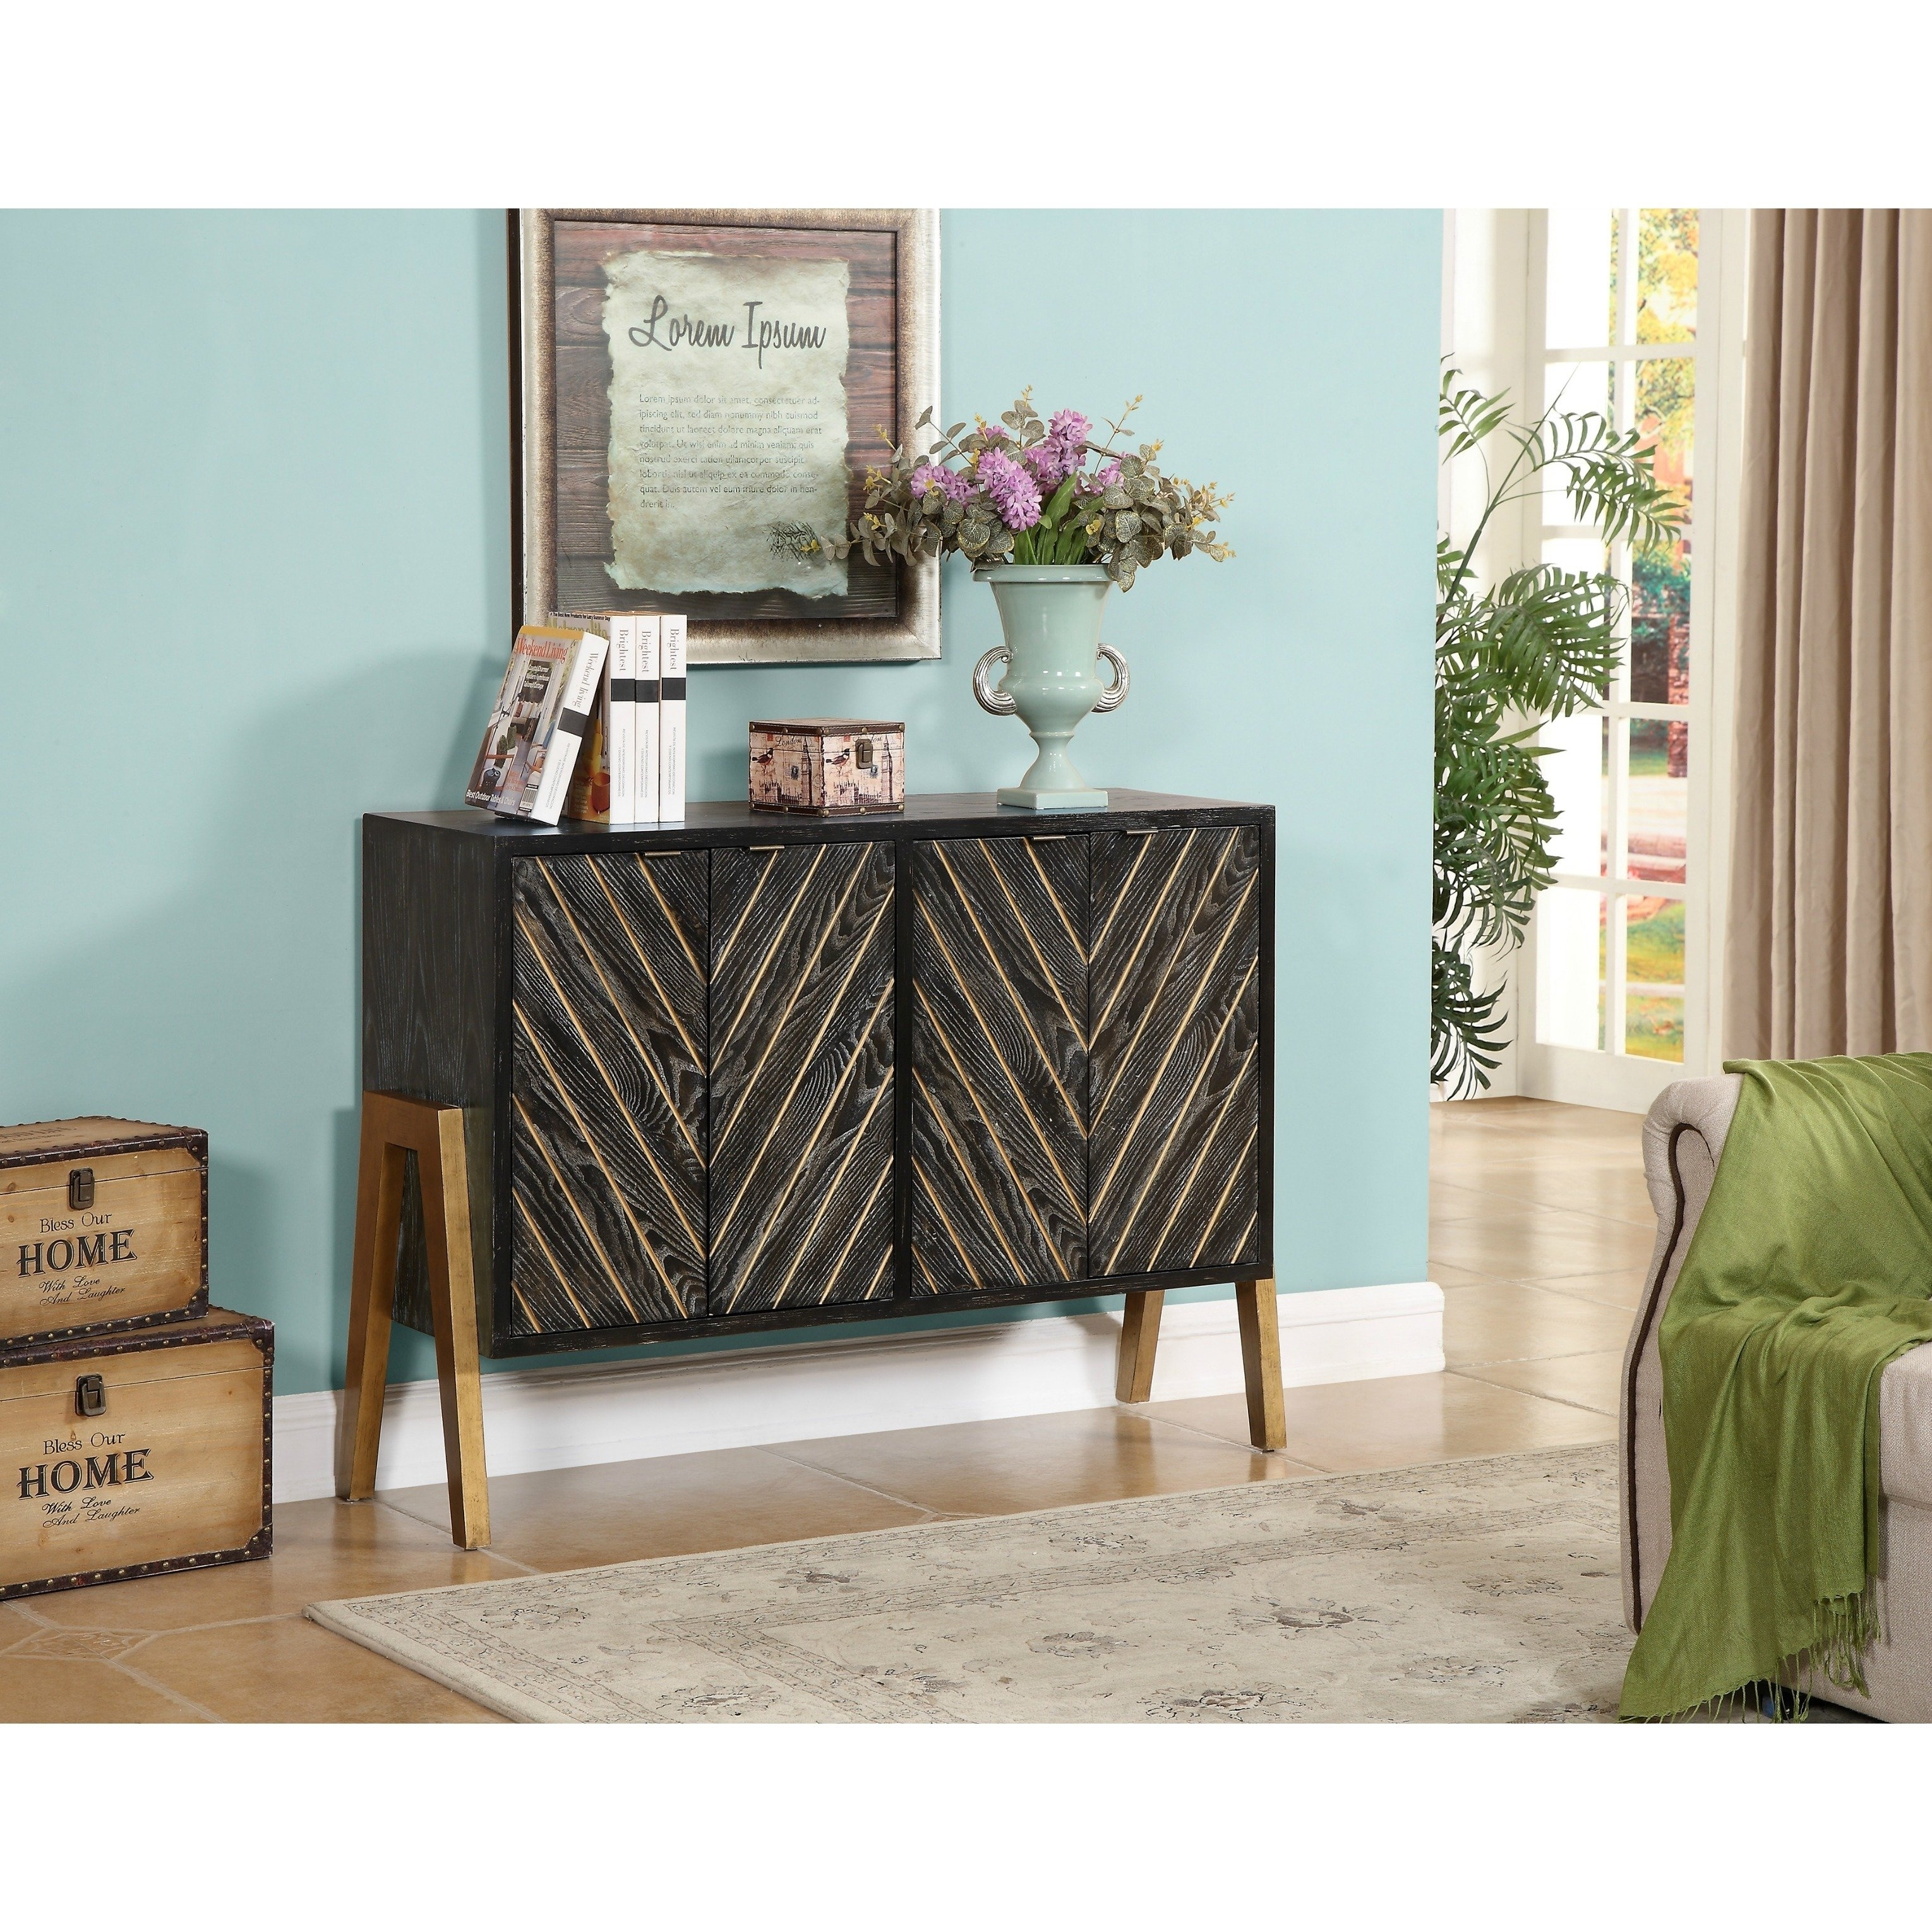 Shop Christopher Knight Home Black And Gold 4-Door Sideboard - Free for Blue Stone Light Rustic Black Sideboards (Image 24 of 30)